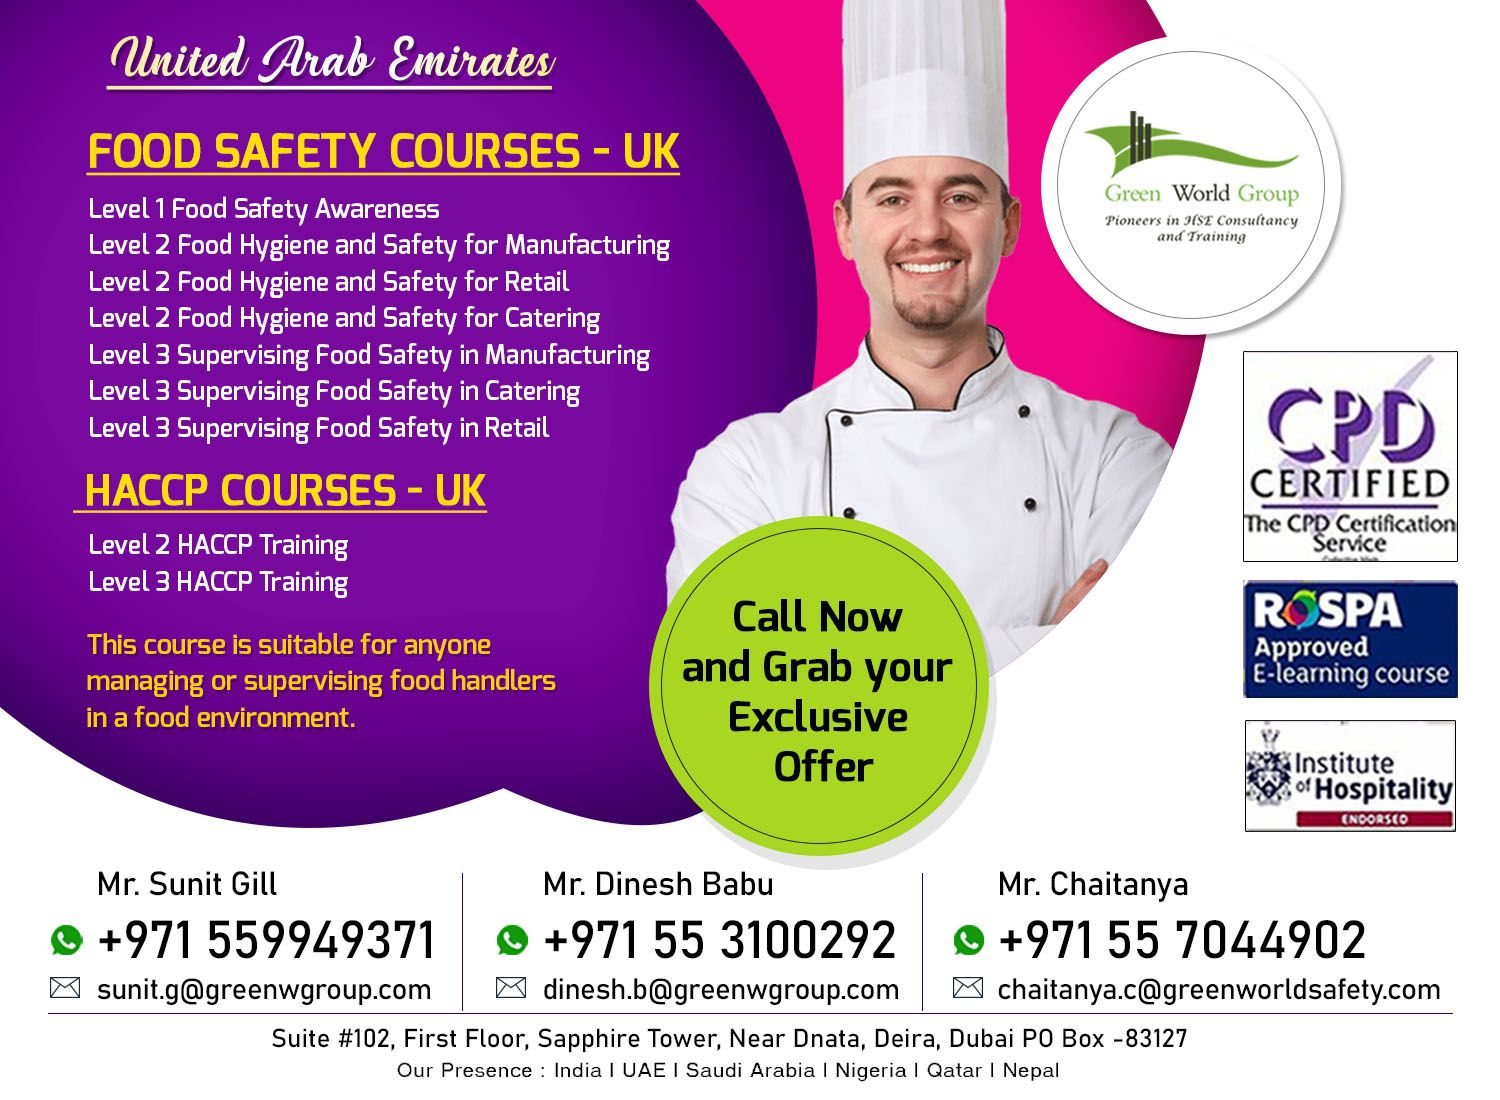 GWG Offer for HACCP and Food Safety courses in Dubai in